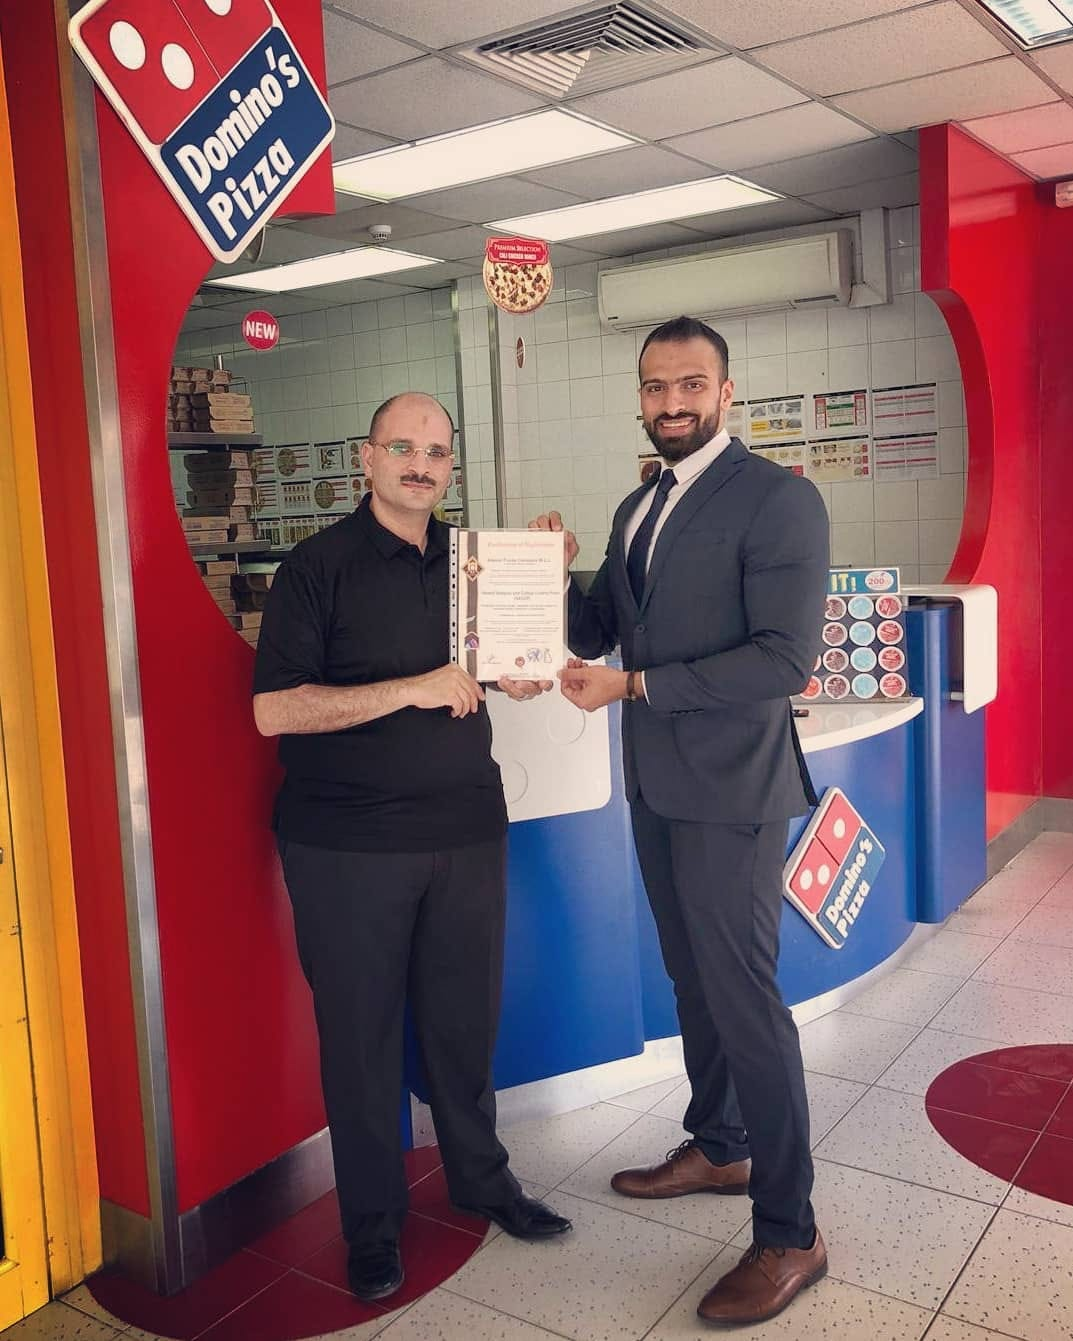 Domino S Pizza Awarded Haccp Food Safety Certificate H A